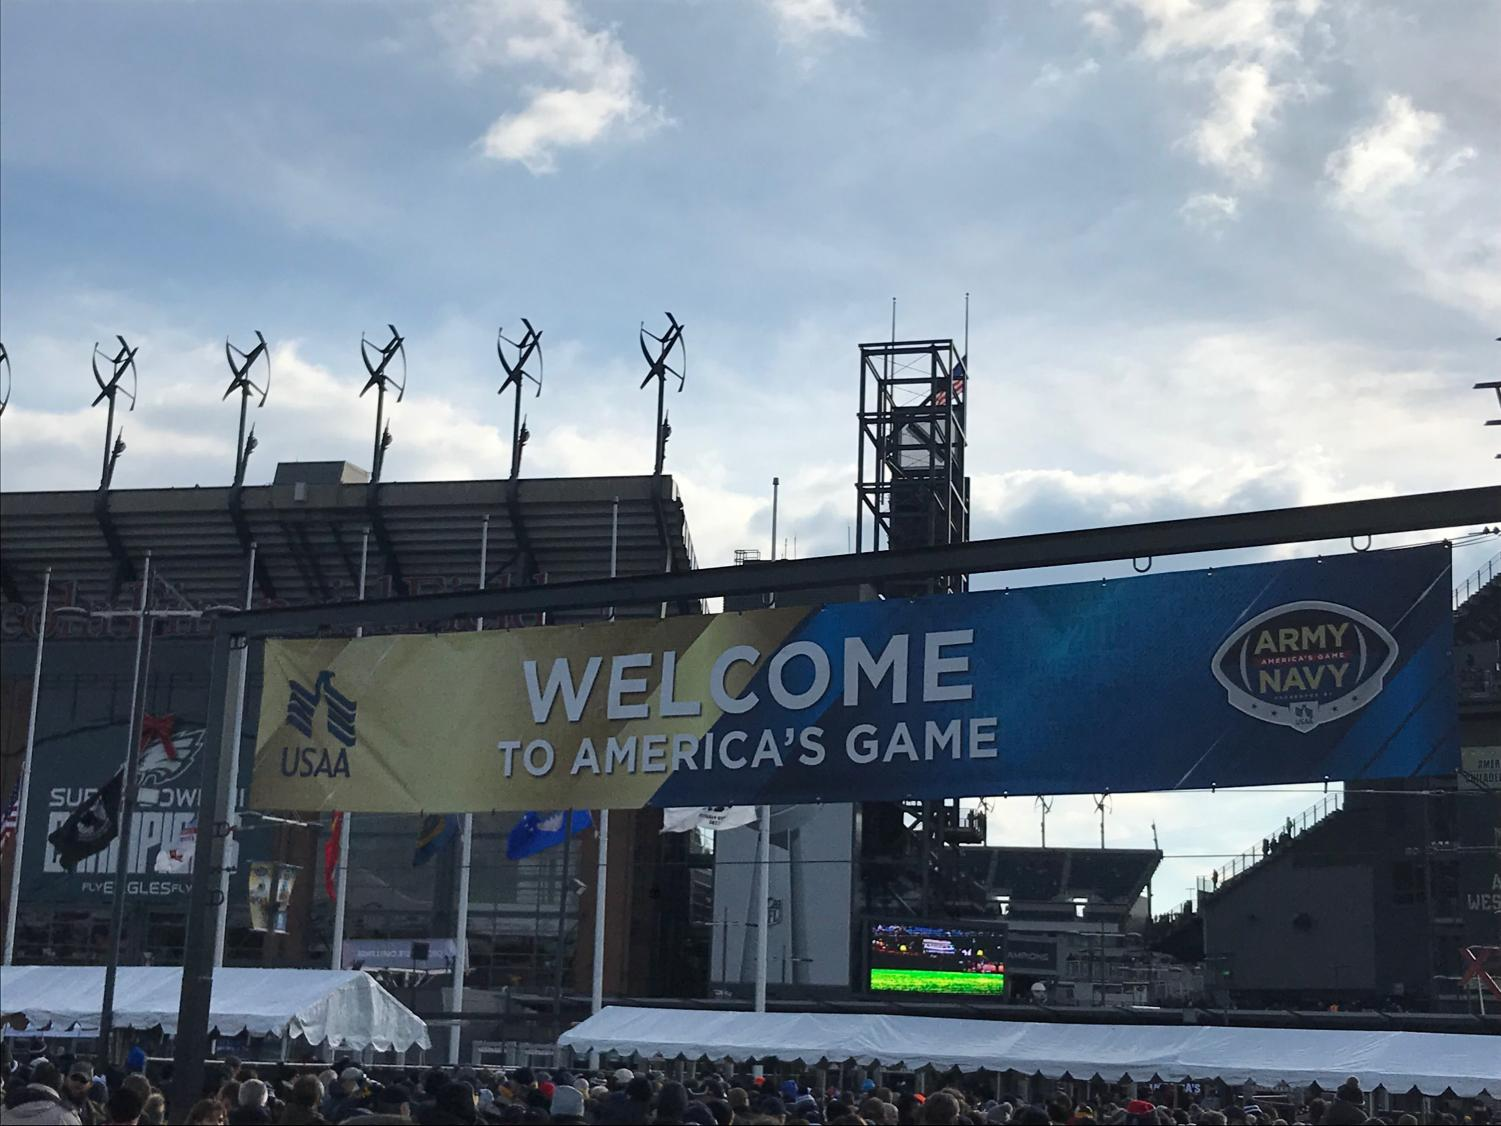 Lincoln Financial Field, the setting for the 119th meeting between the Army Black Knights and Navy Midshipmen